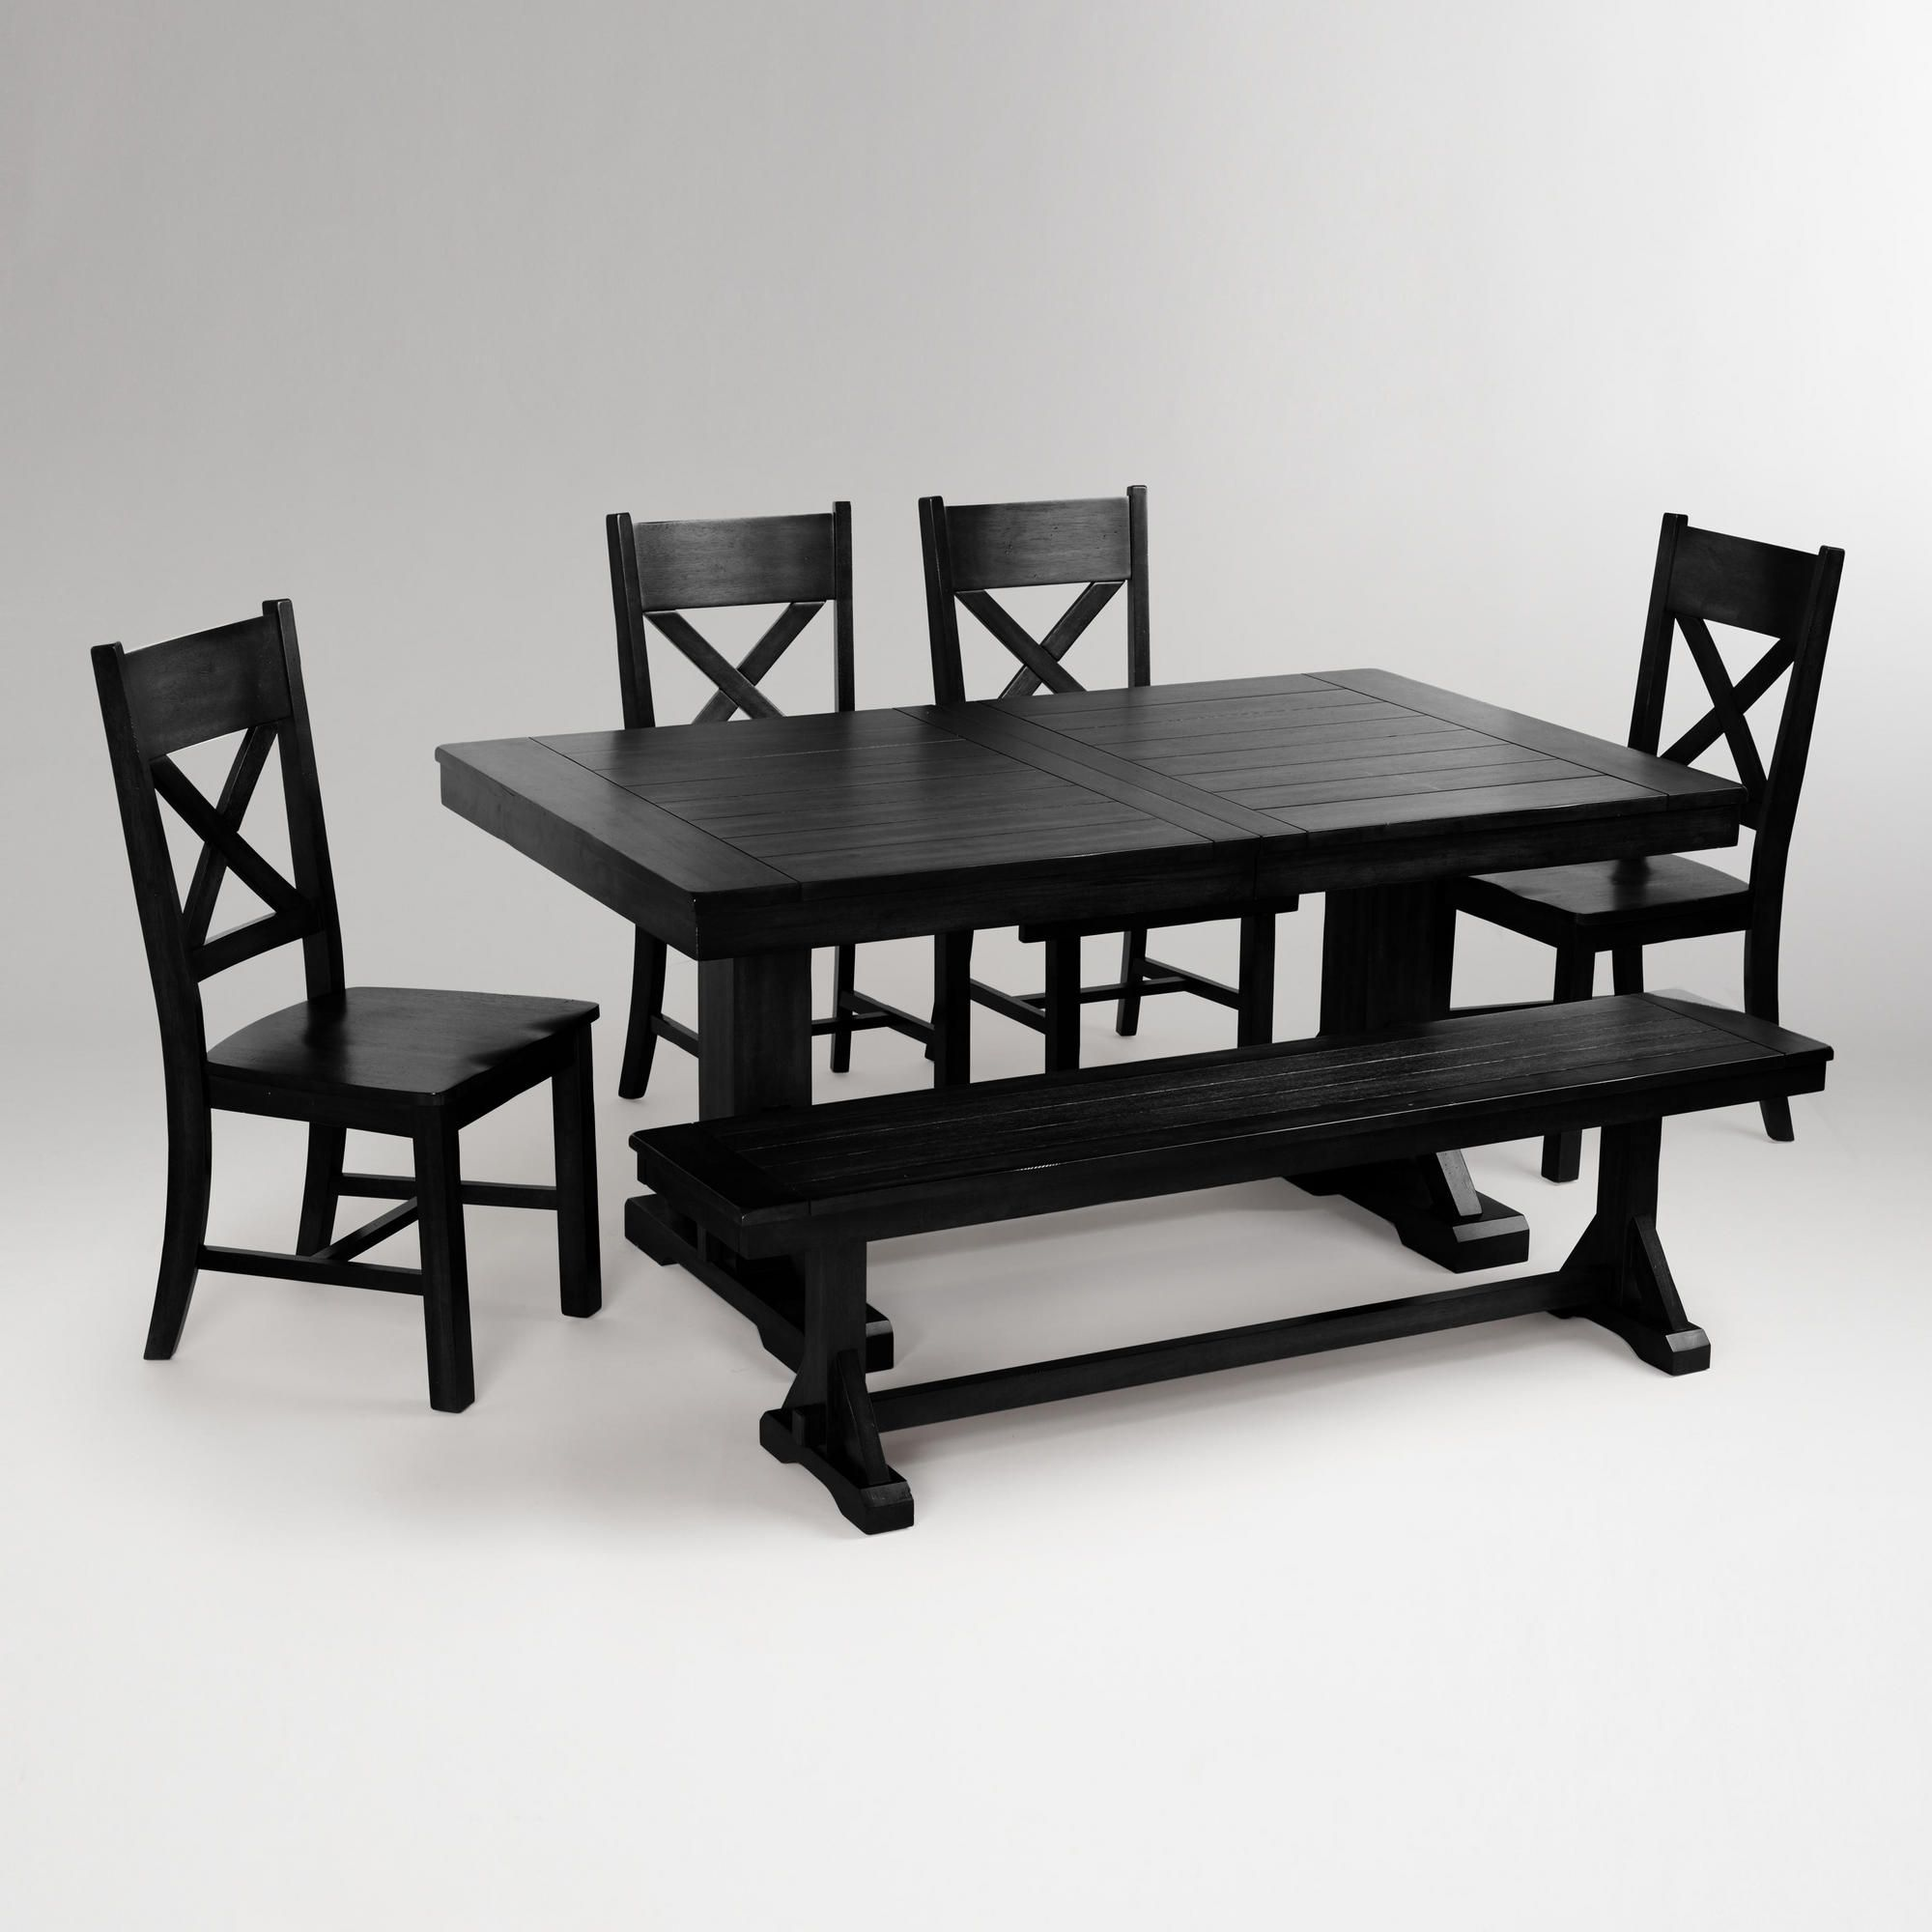 Dining Benches And Banquettes Dining Room Furniture Furniture | World Market